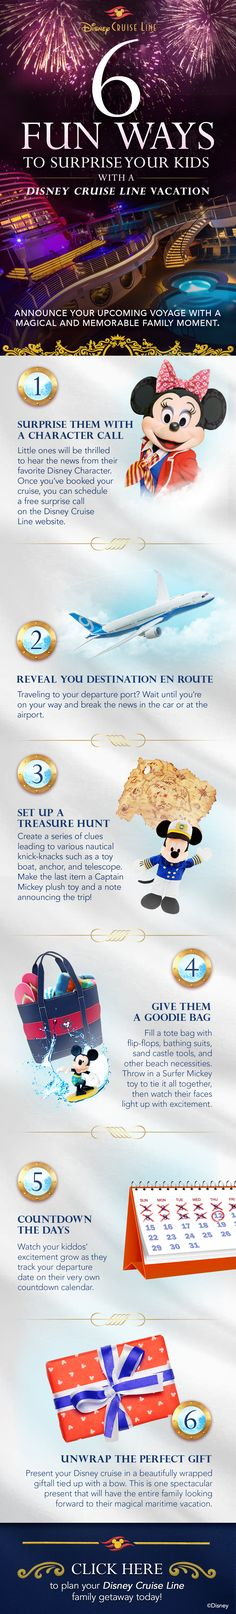 Surprising your family with a Disney Cruise Line adventure? Here's some ideas for announcing the surprise.